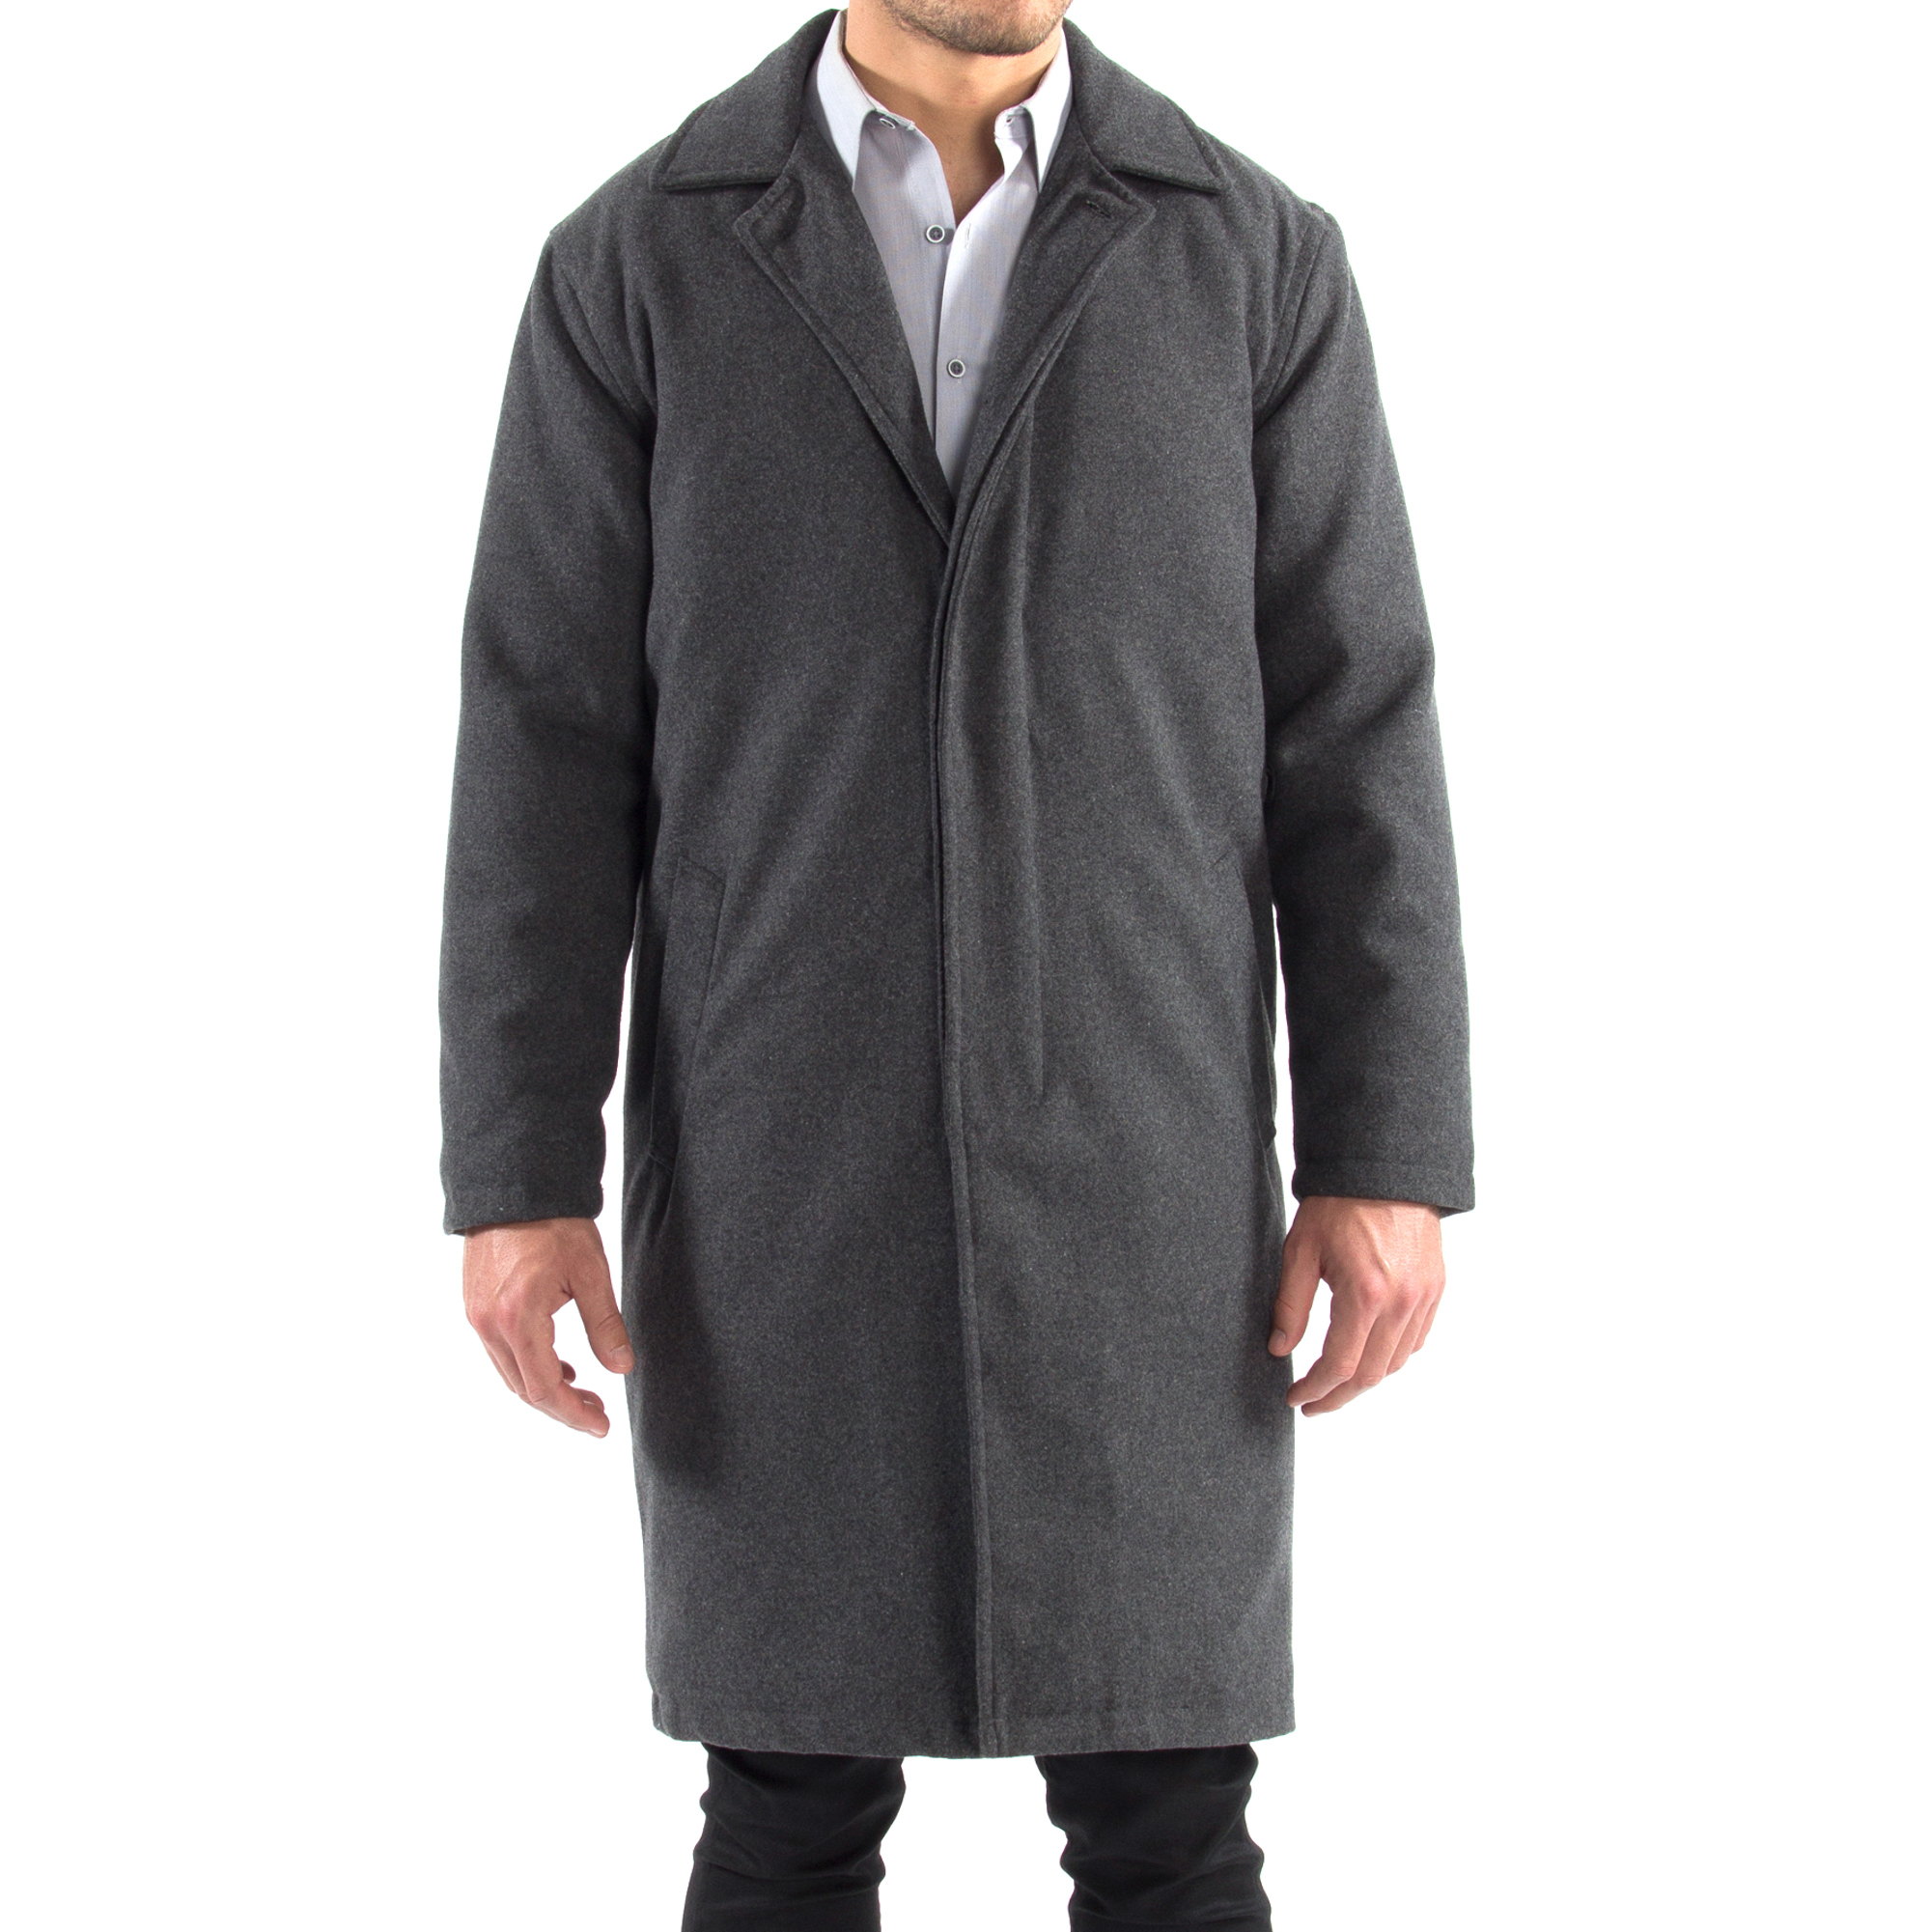 Alpine-Swiss-Mens-Zach-Knee-Length-Jacket-Top-Coat-Trench-Wool-Blend-Overcoat thumbnail 36